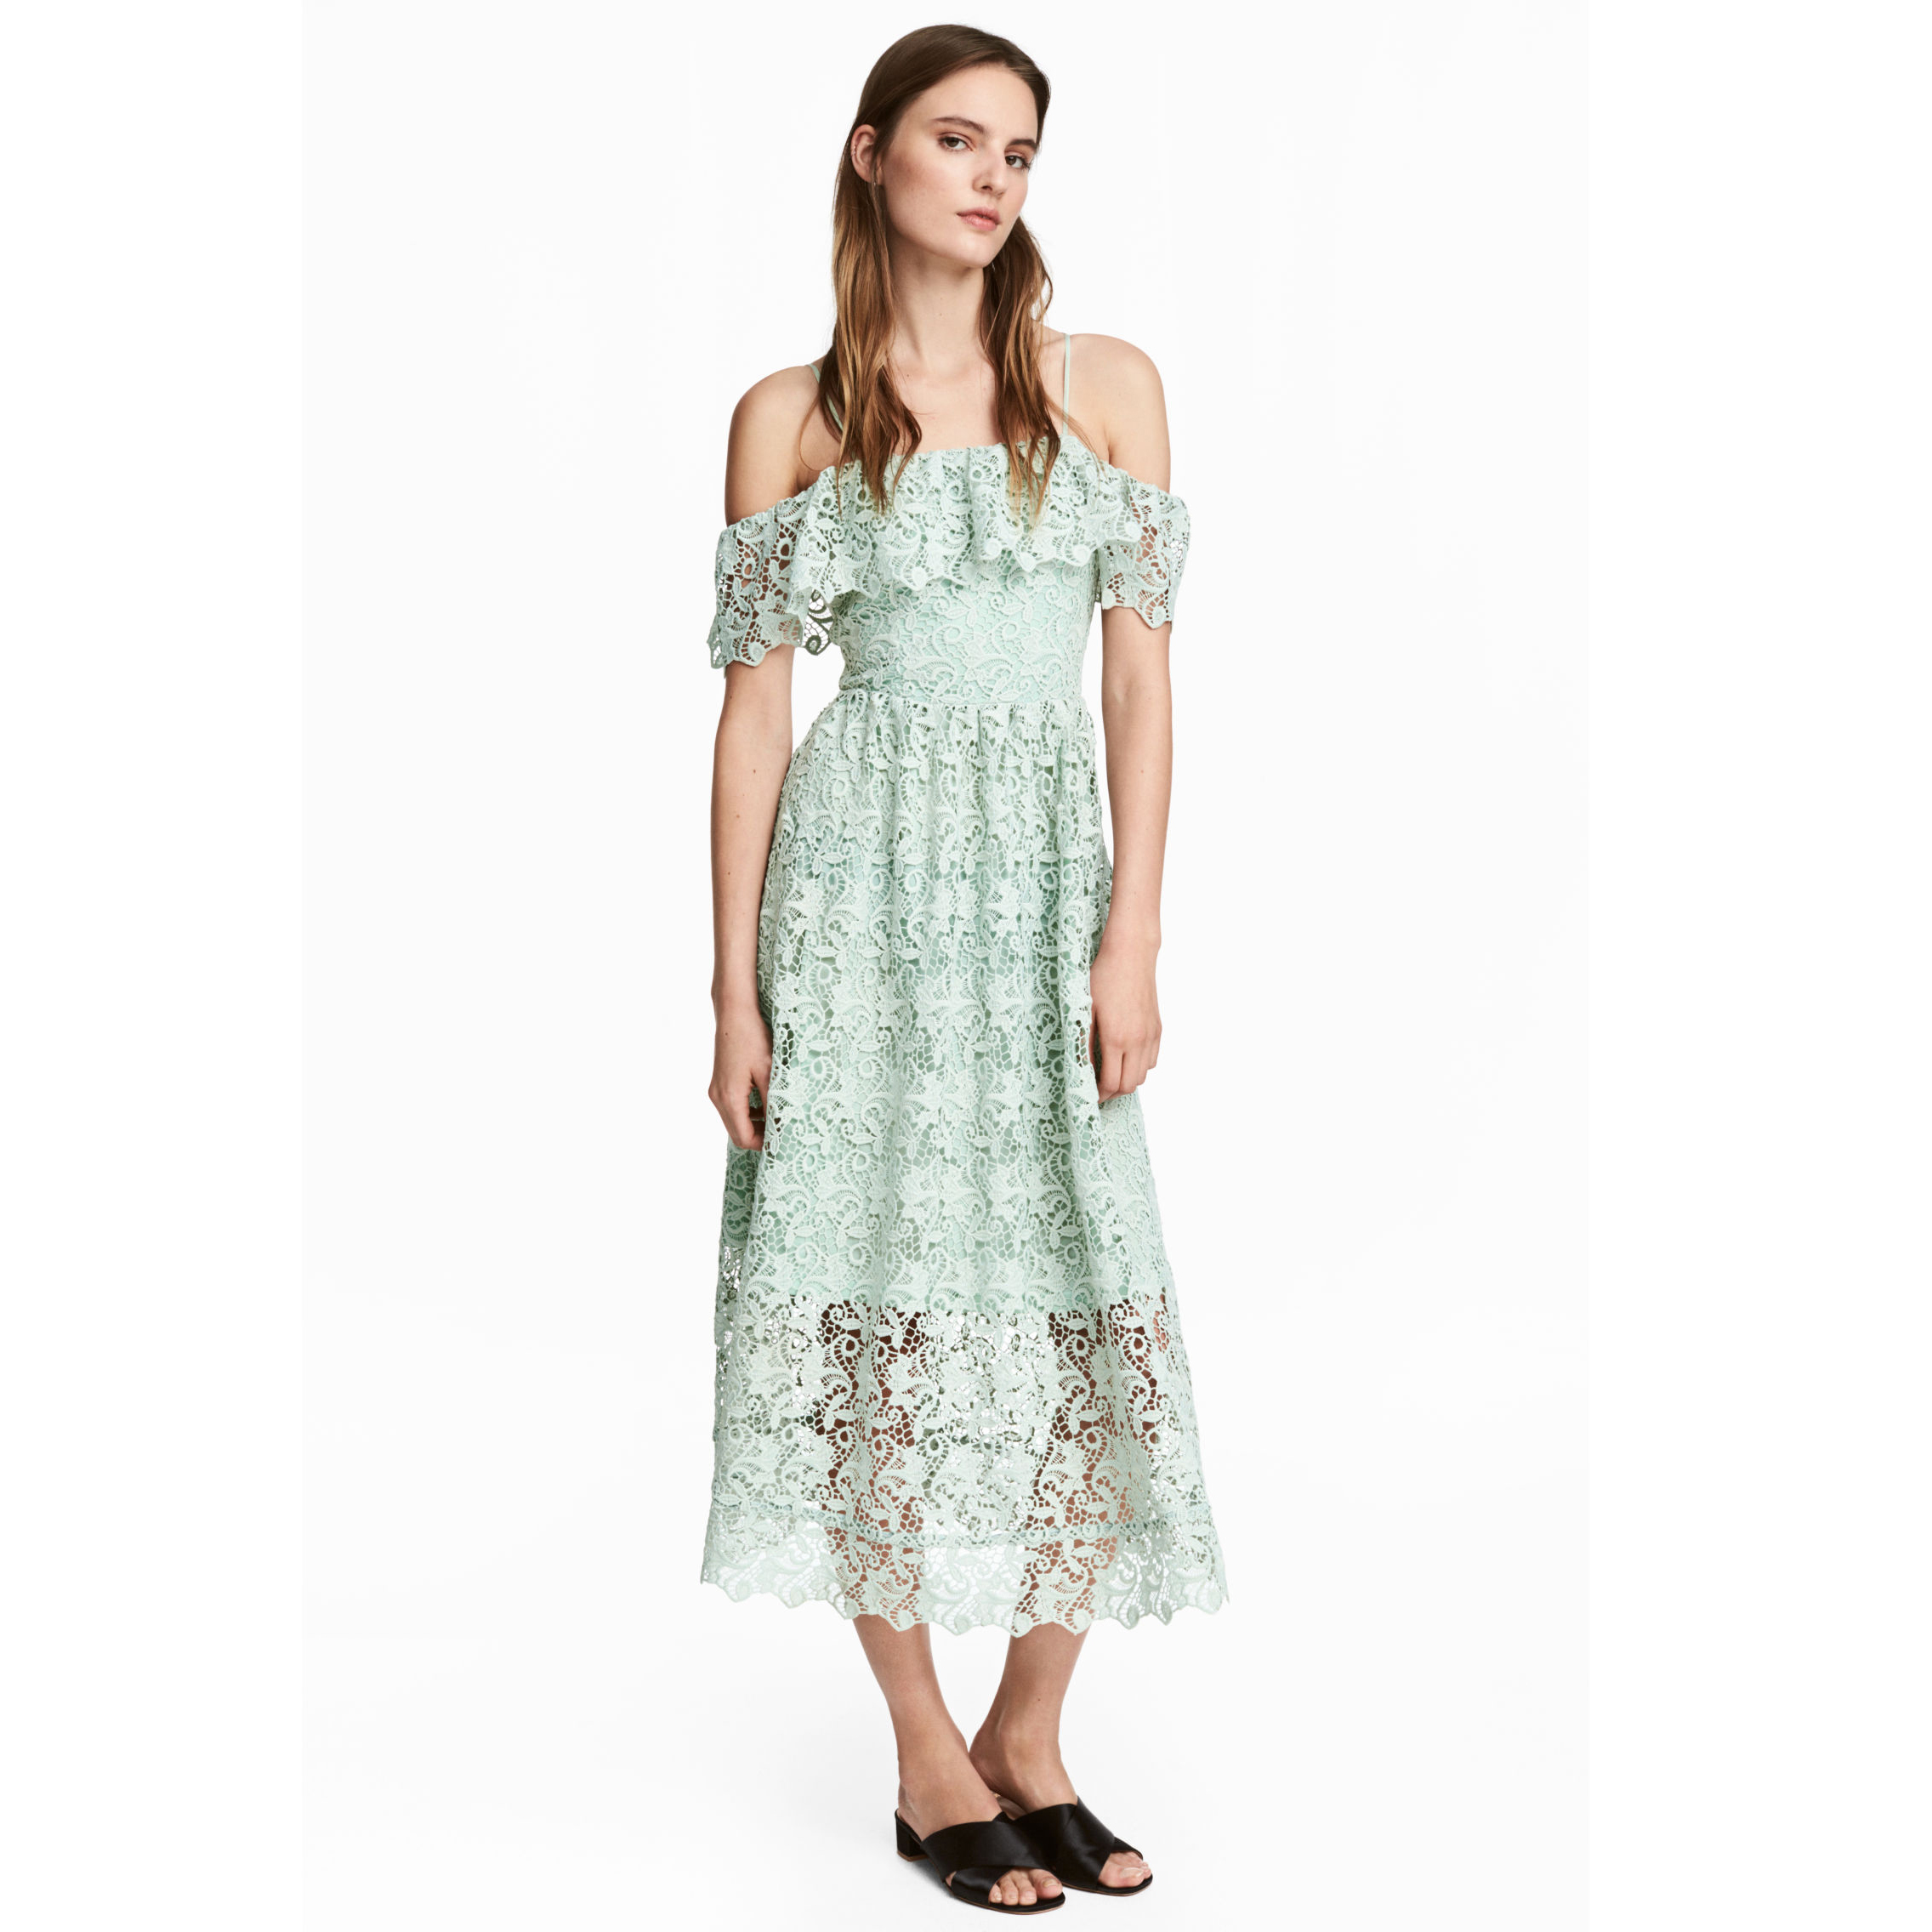 model wearing h&m off the shoulder lace dress